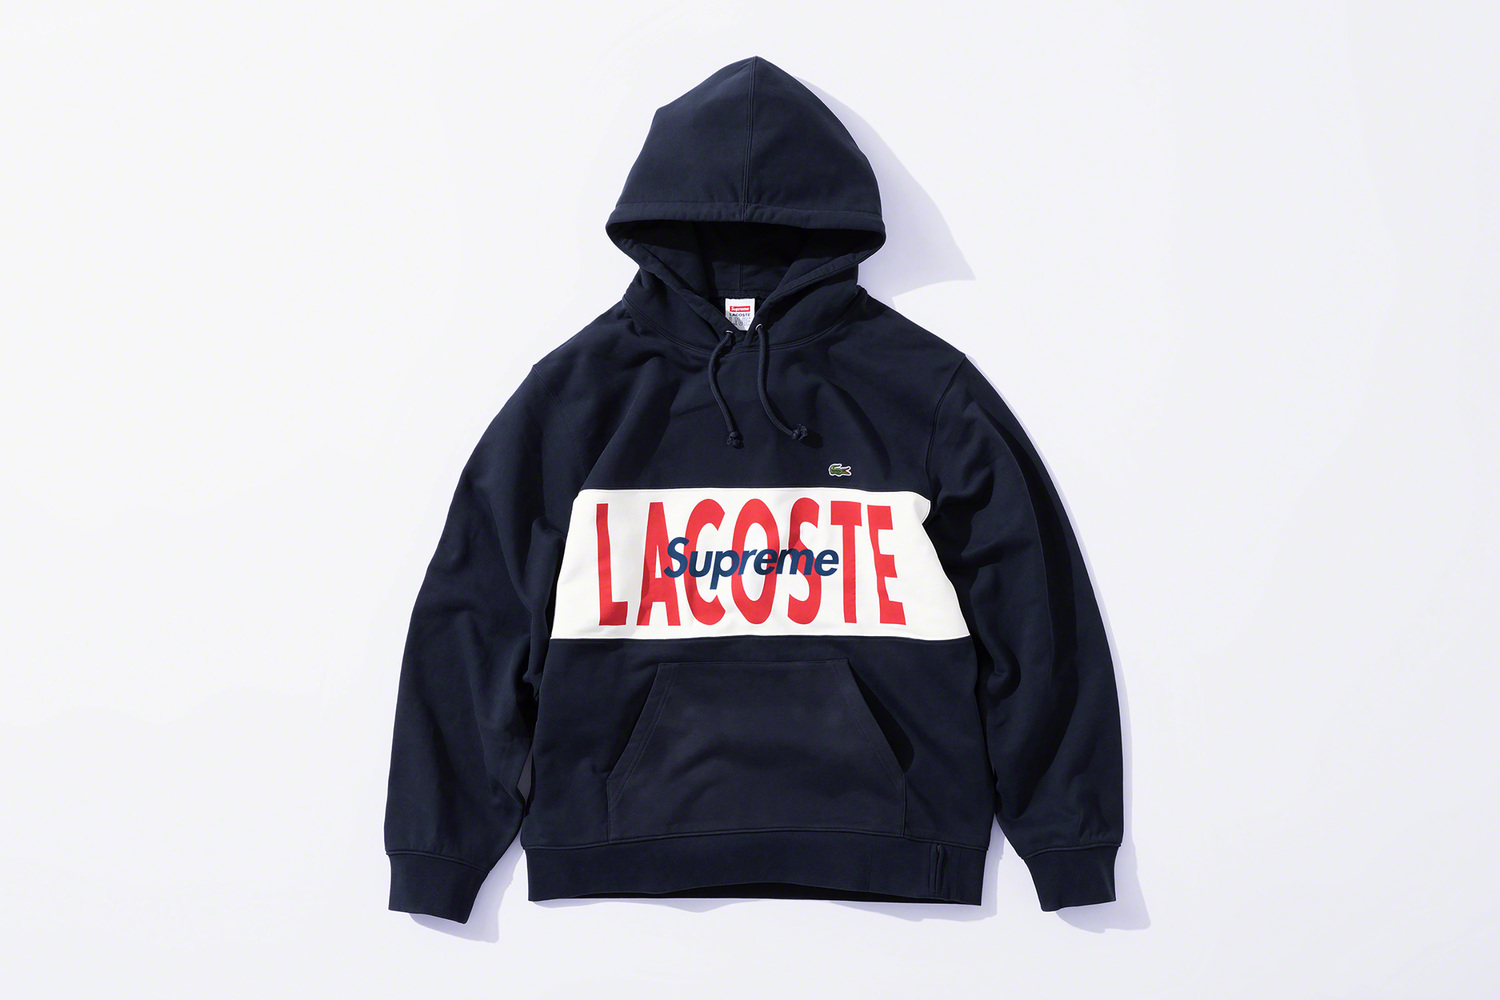 supreme-lacoste-19aw-19fw-collaboration-release-20190928-week5